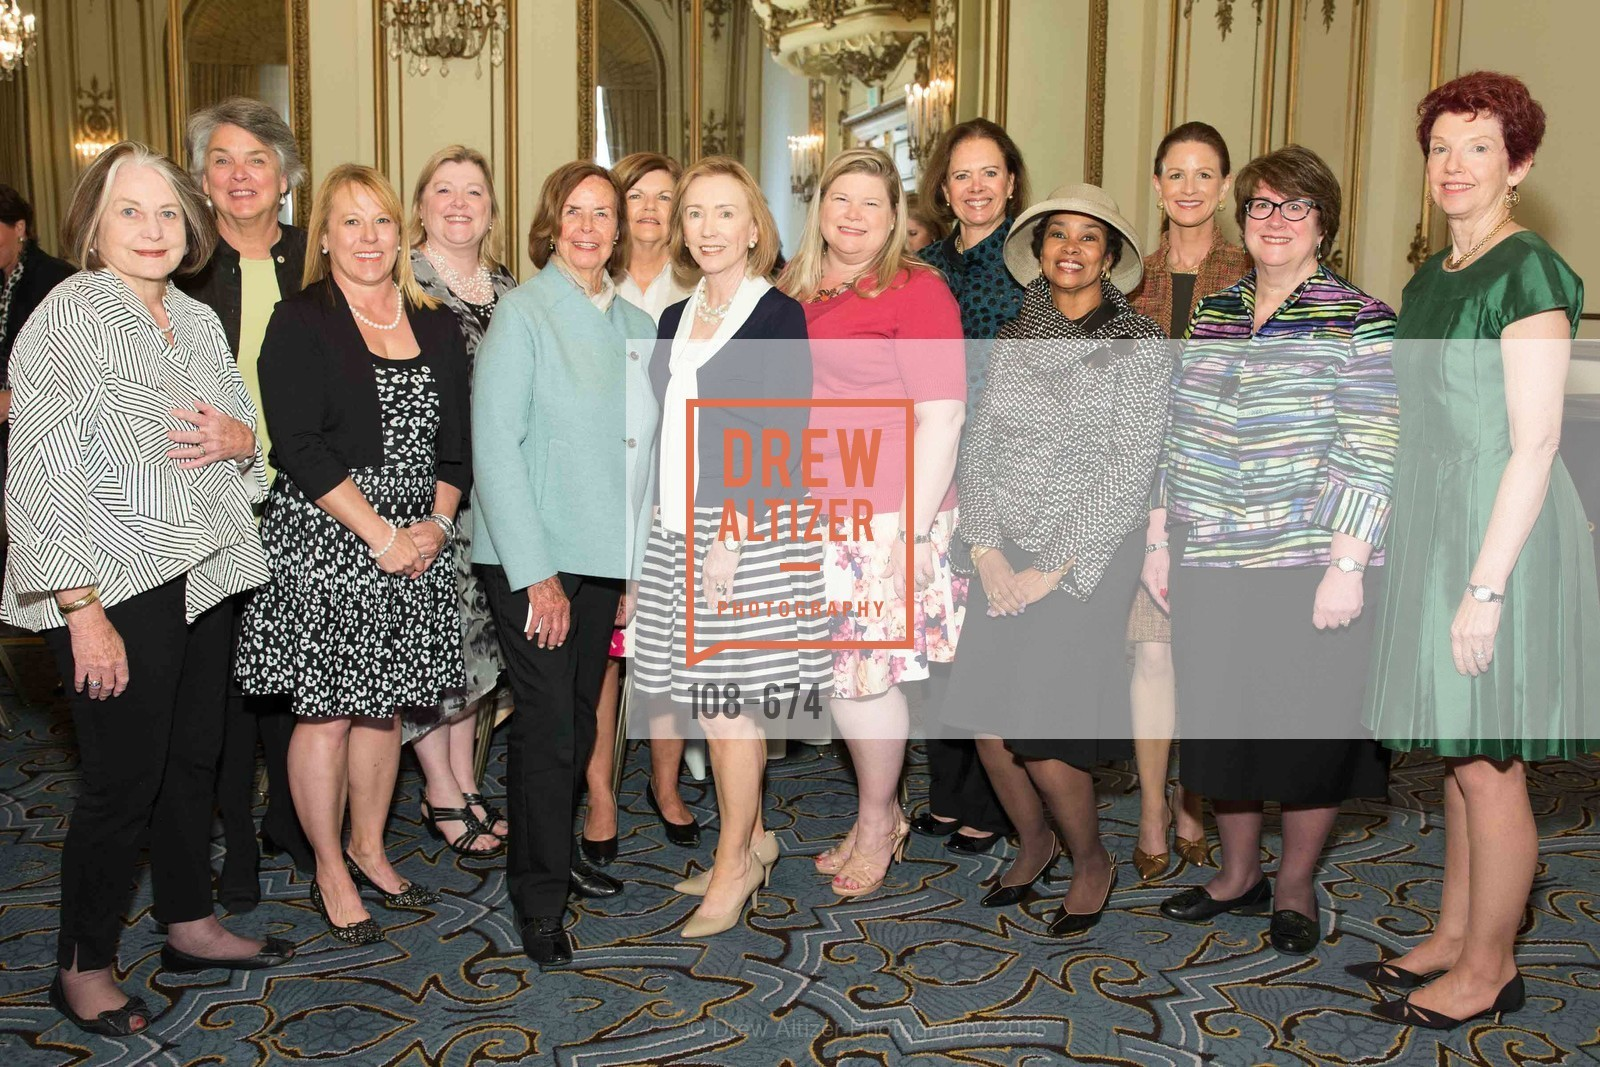 Lisa Ryder, Trish Otstott, Jennifer Johnston, Kaki DeSautels, Anette Harris, Judy Jorgensen, Susan Hoganson, Junior League of San Francisco's WATCH Luncheon, Fairmont Hotel. 950 Mason Street, May 4th, 2015,Drew Altizer, Drew Altizer Photography, full-service event agency, private events, San Francisco photographer, photographer California